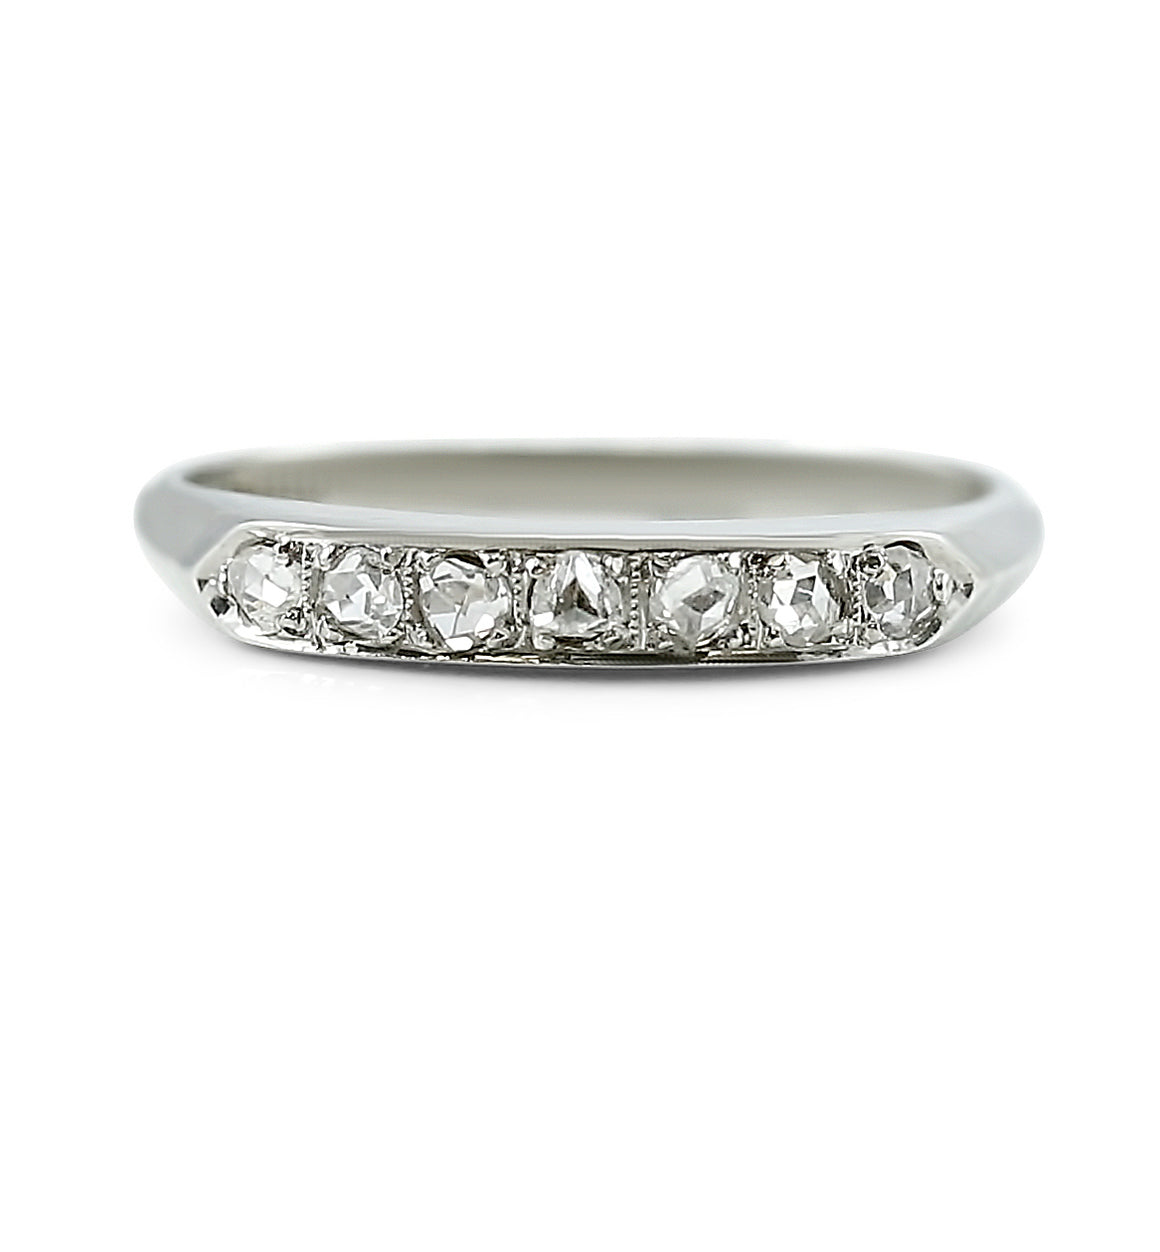 14k white gold channel set rose cut diamond estate wedding band with knife edge details